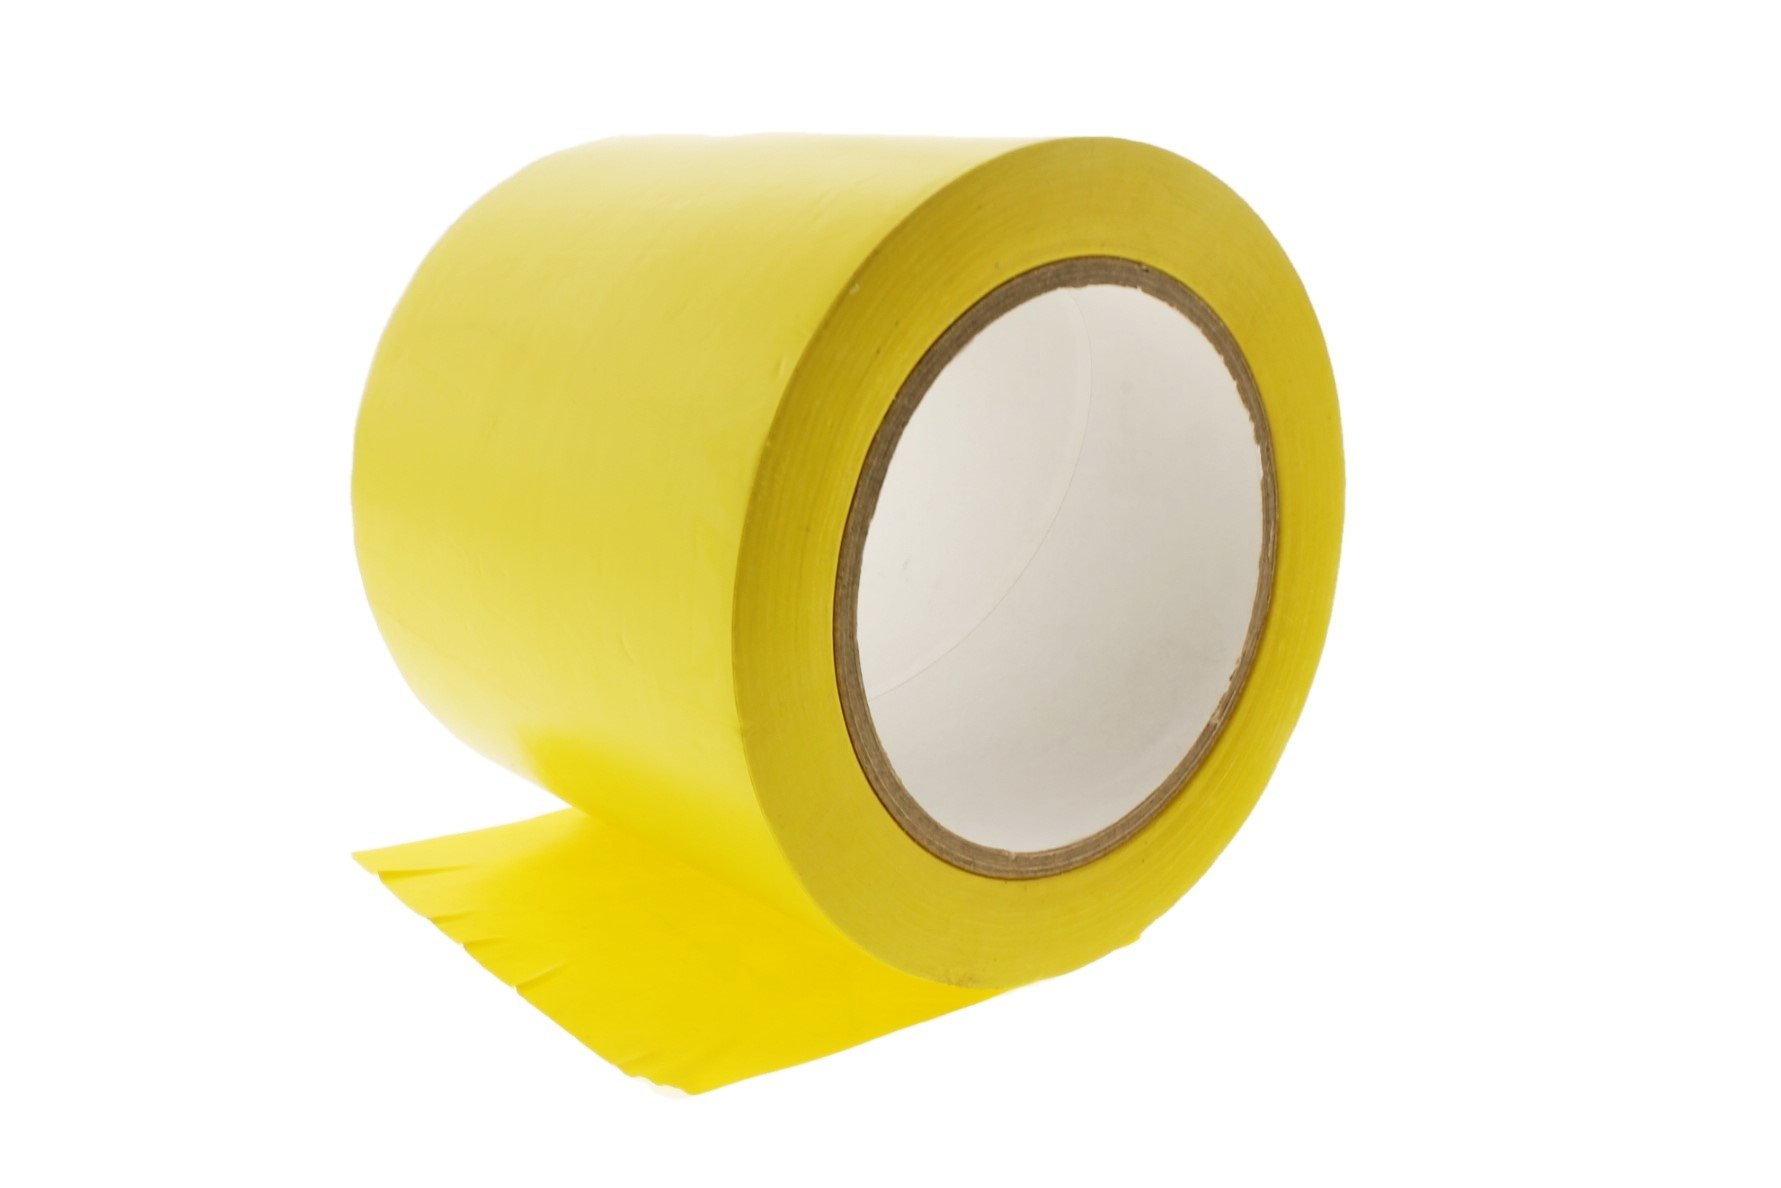 4'' General Purpose Yellow Insulated Adhesive PVC Vinyl Sealing Coding Marking Electrical Tape (3.76 in 96MM) 36 yard 7 mil by WhiteCore